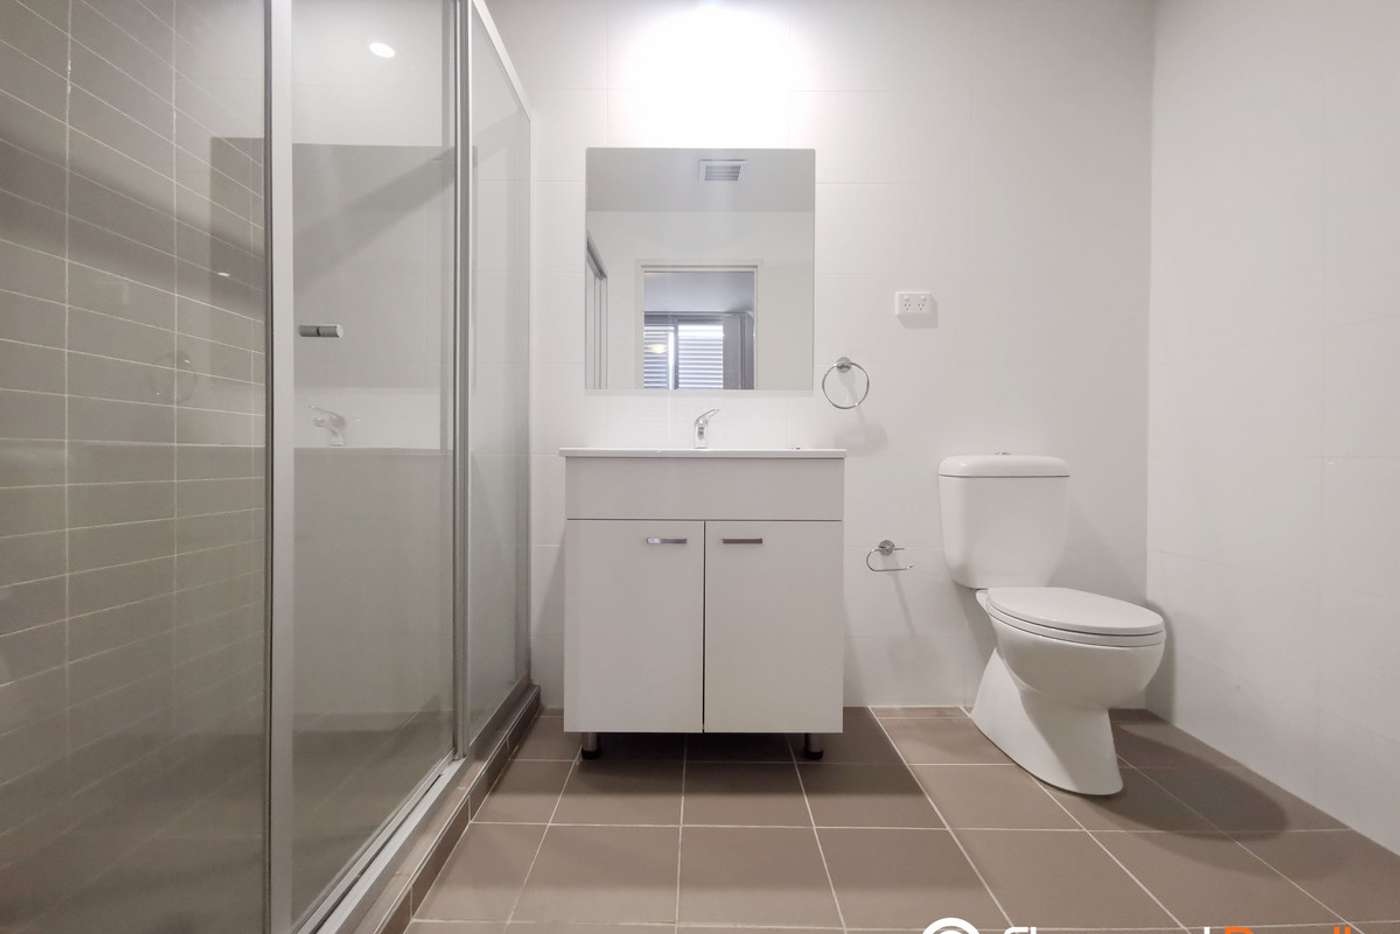 Seventh view of Homely apartment listing, 27/294-302 Pennant Hills Road, Carlingford NSW 2118